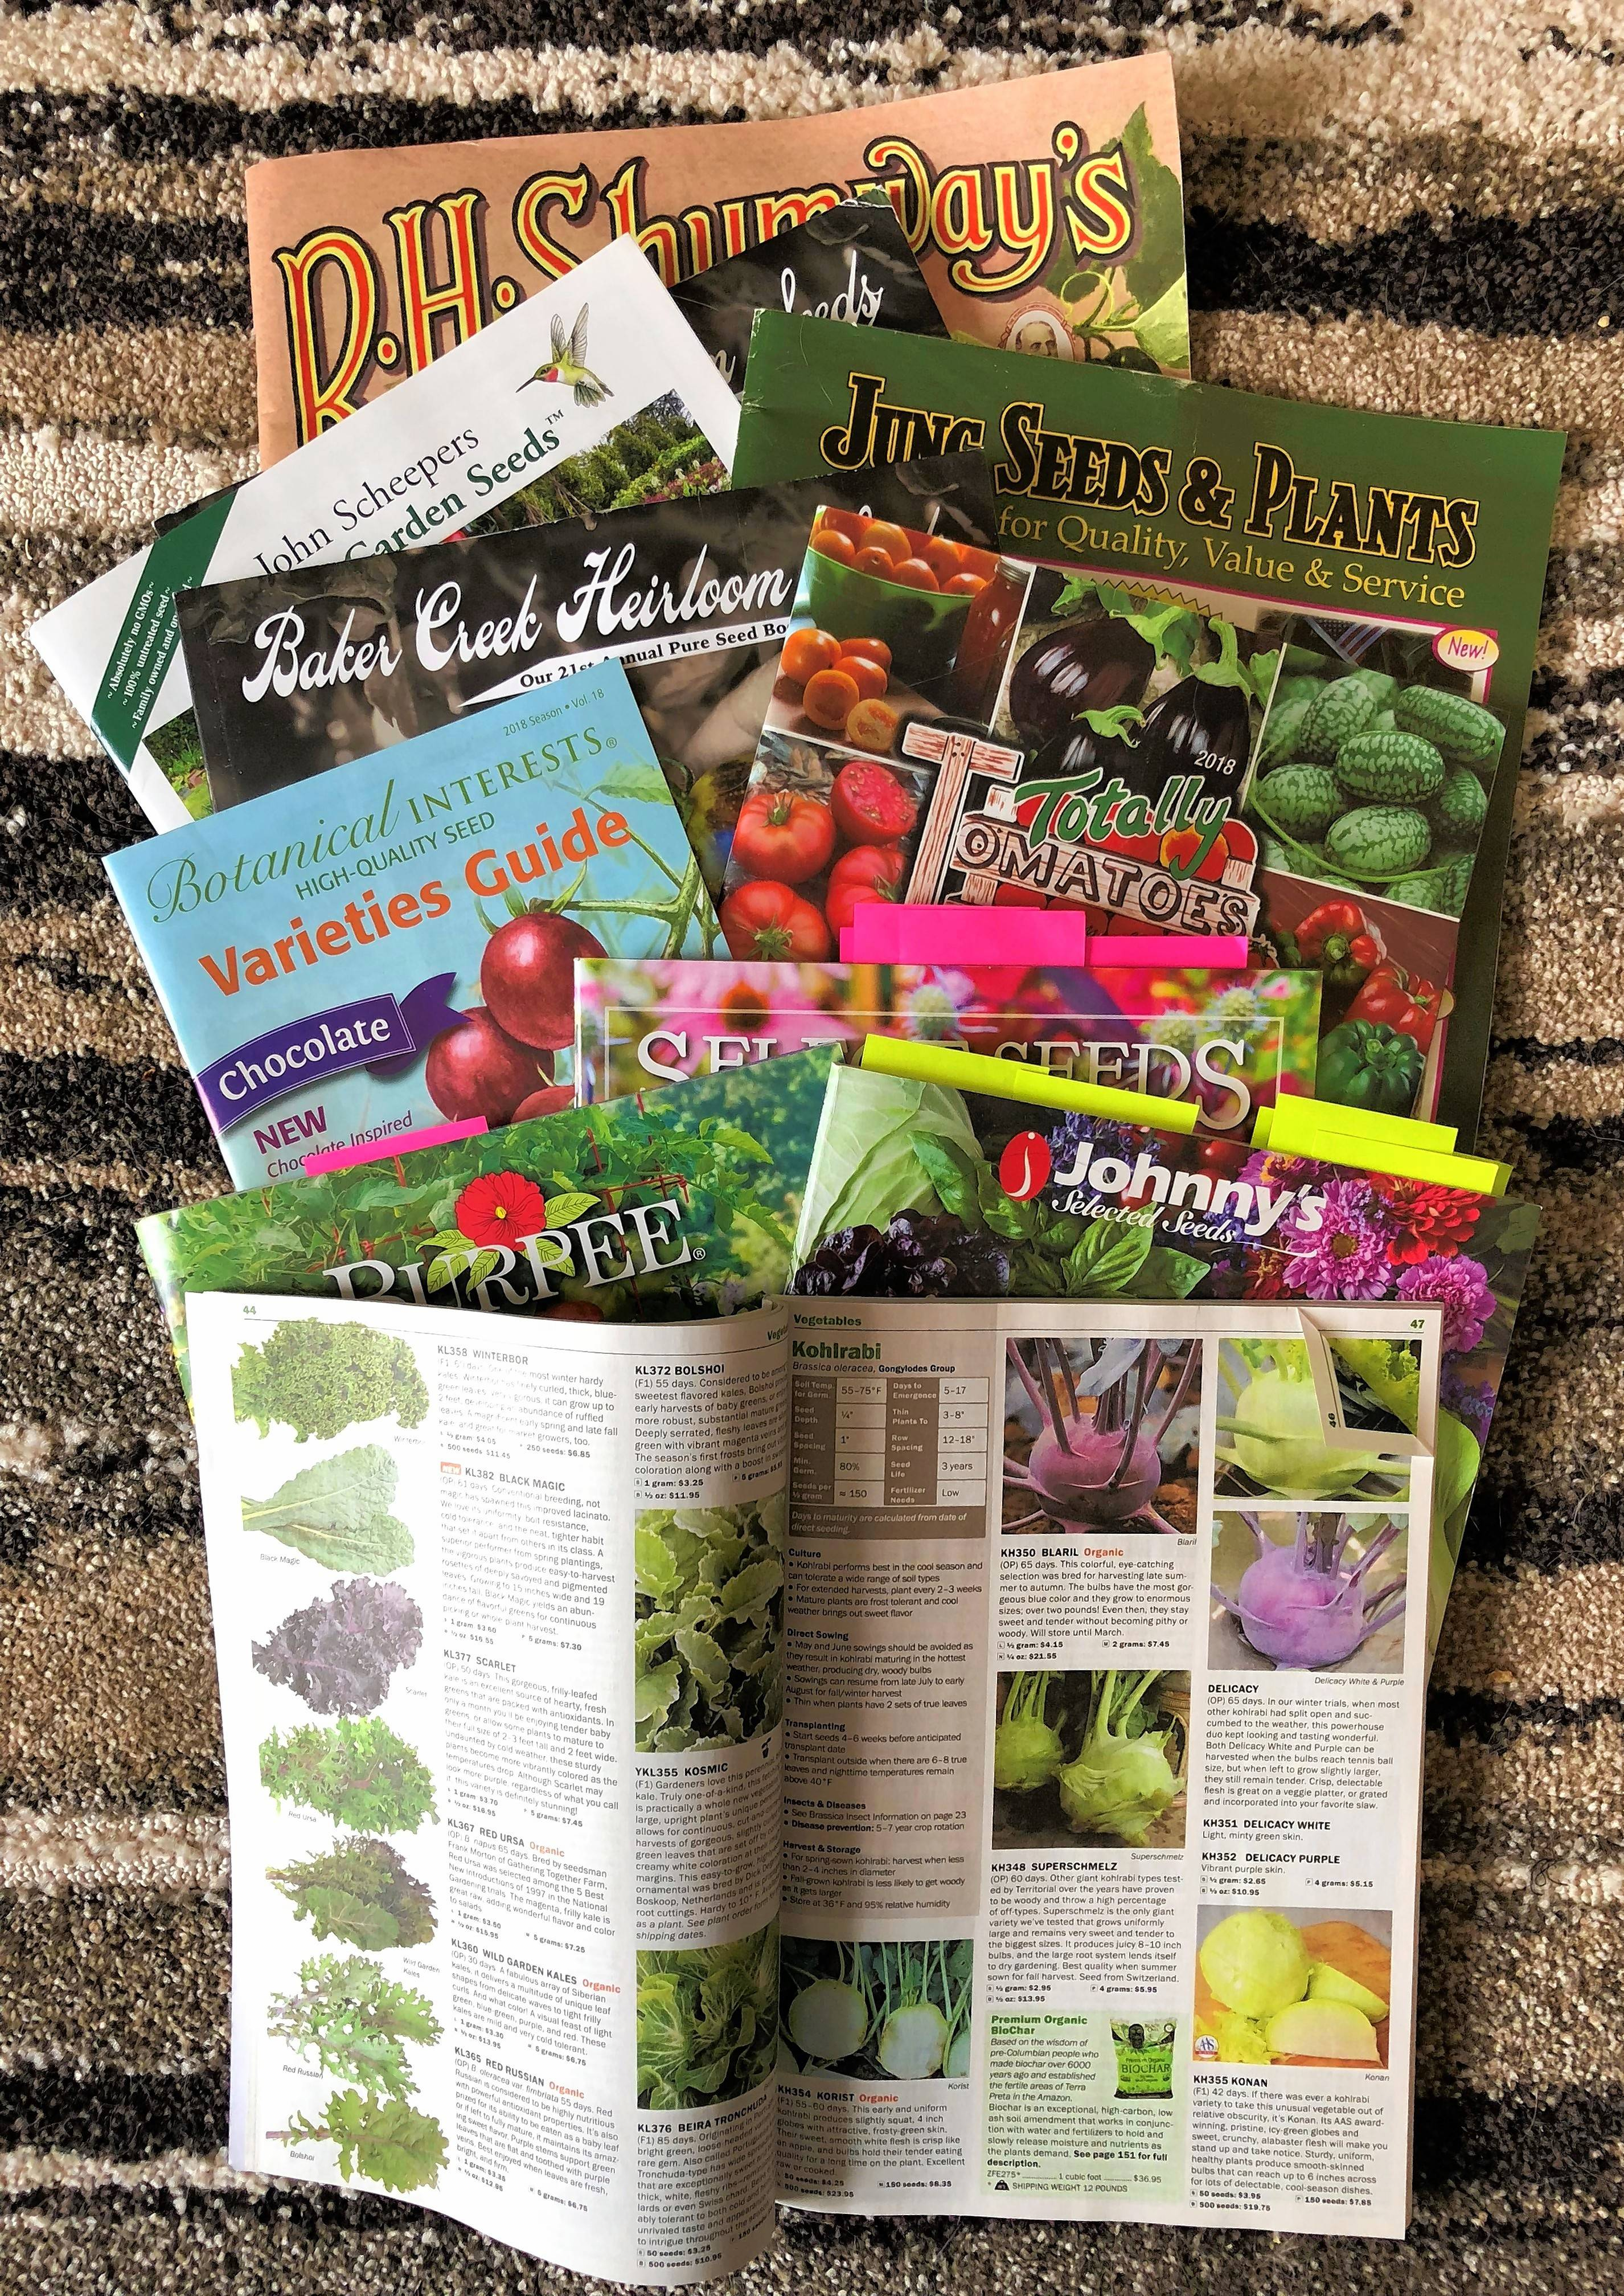 Seed catalogs are easy to read for veteran gardeners, but those new on the scene may have a few questions.